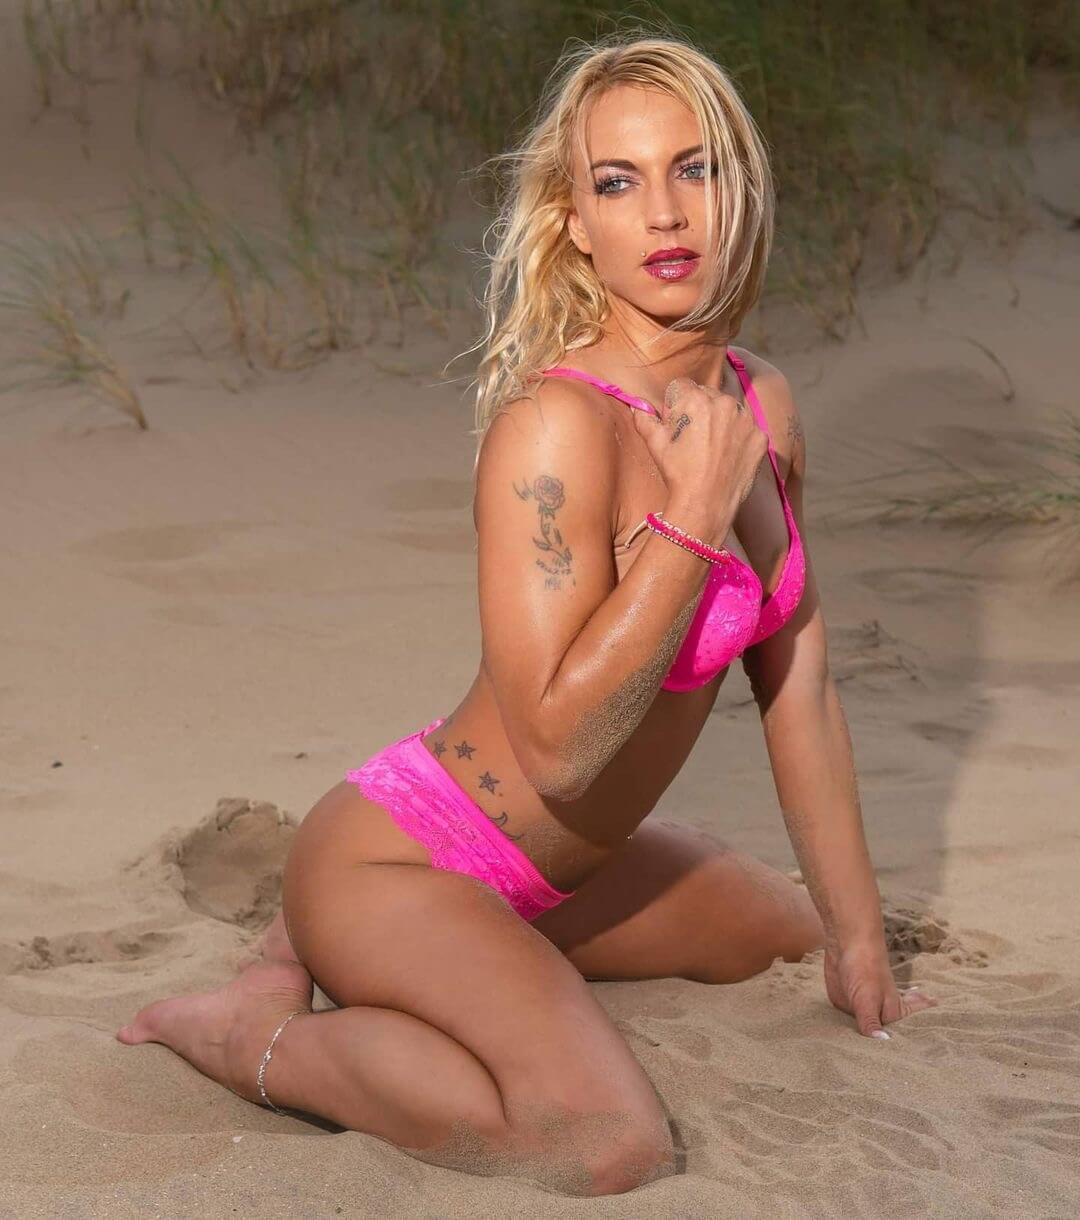 Sexy blonde inked model wearing pink kneeling in the sand for a hot beach photo session